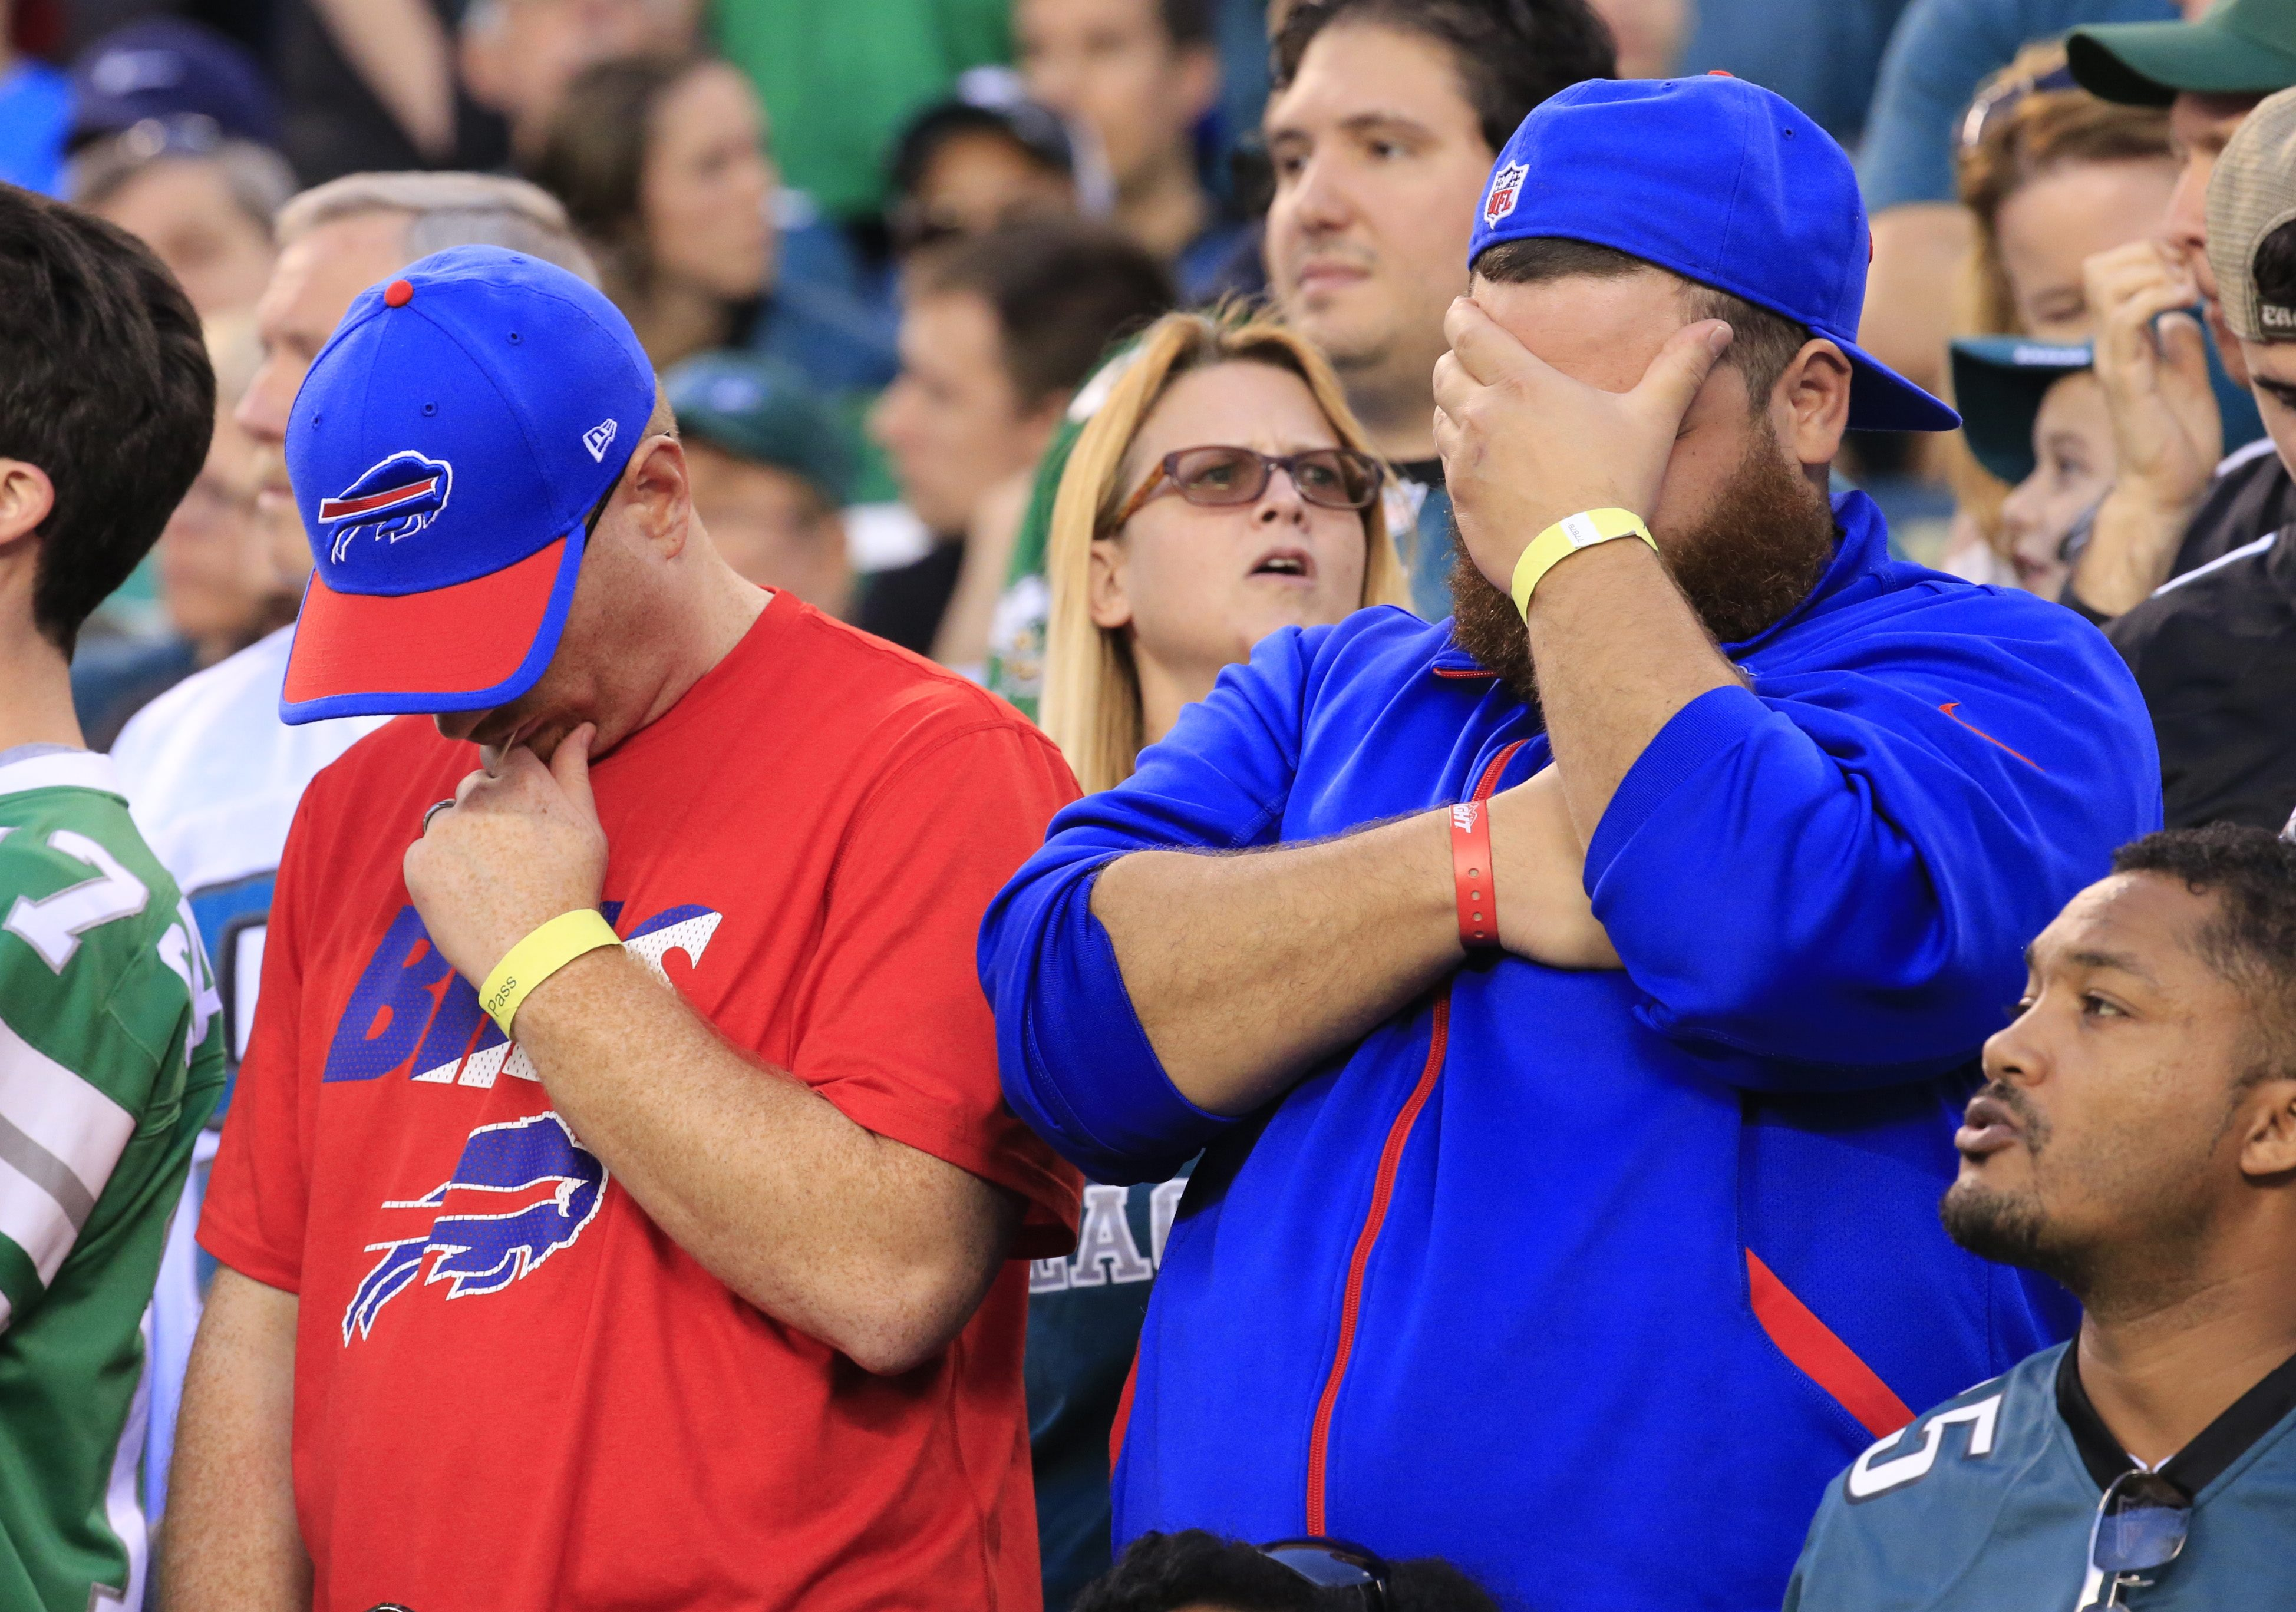 Buffalo Bills fans during the closing minutes at Philadephia's Lincoln Financial Field. (Harry Scull Jr./Buffalo News)